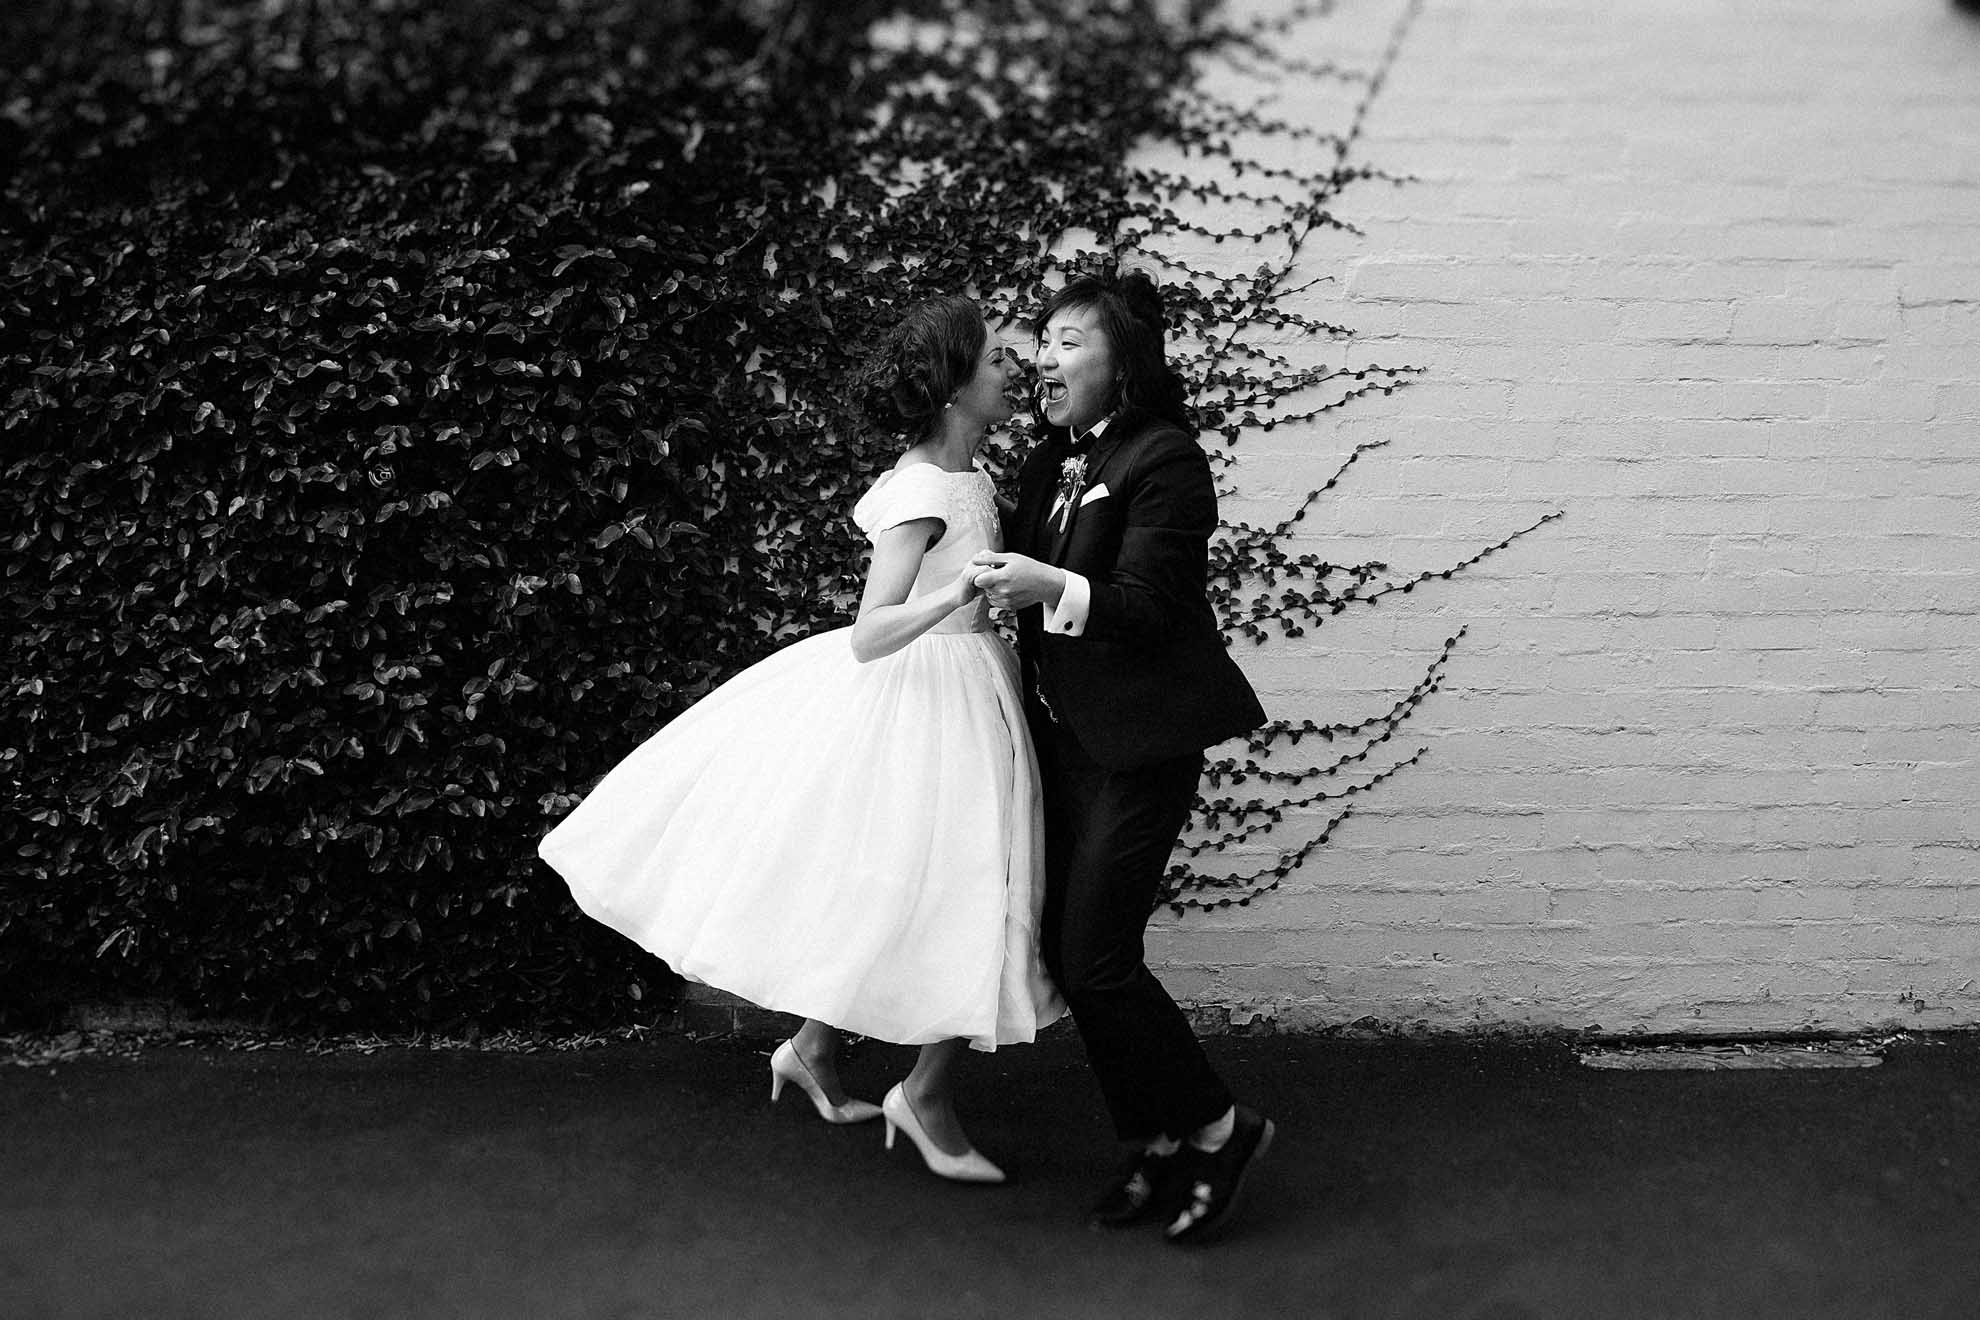 001 finder seeker - Dee from Finder Seeker lesbian gay queer lgbtqia+ Melbourne Victorian wedding engagement photography Dancing With Her